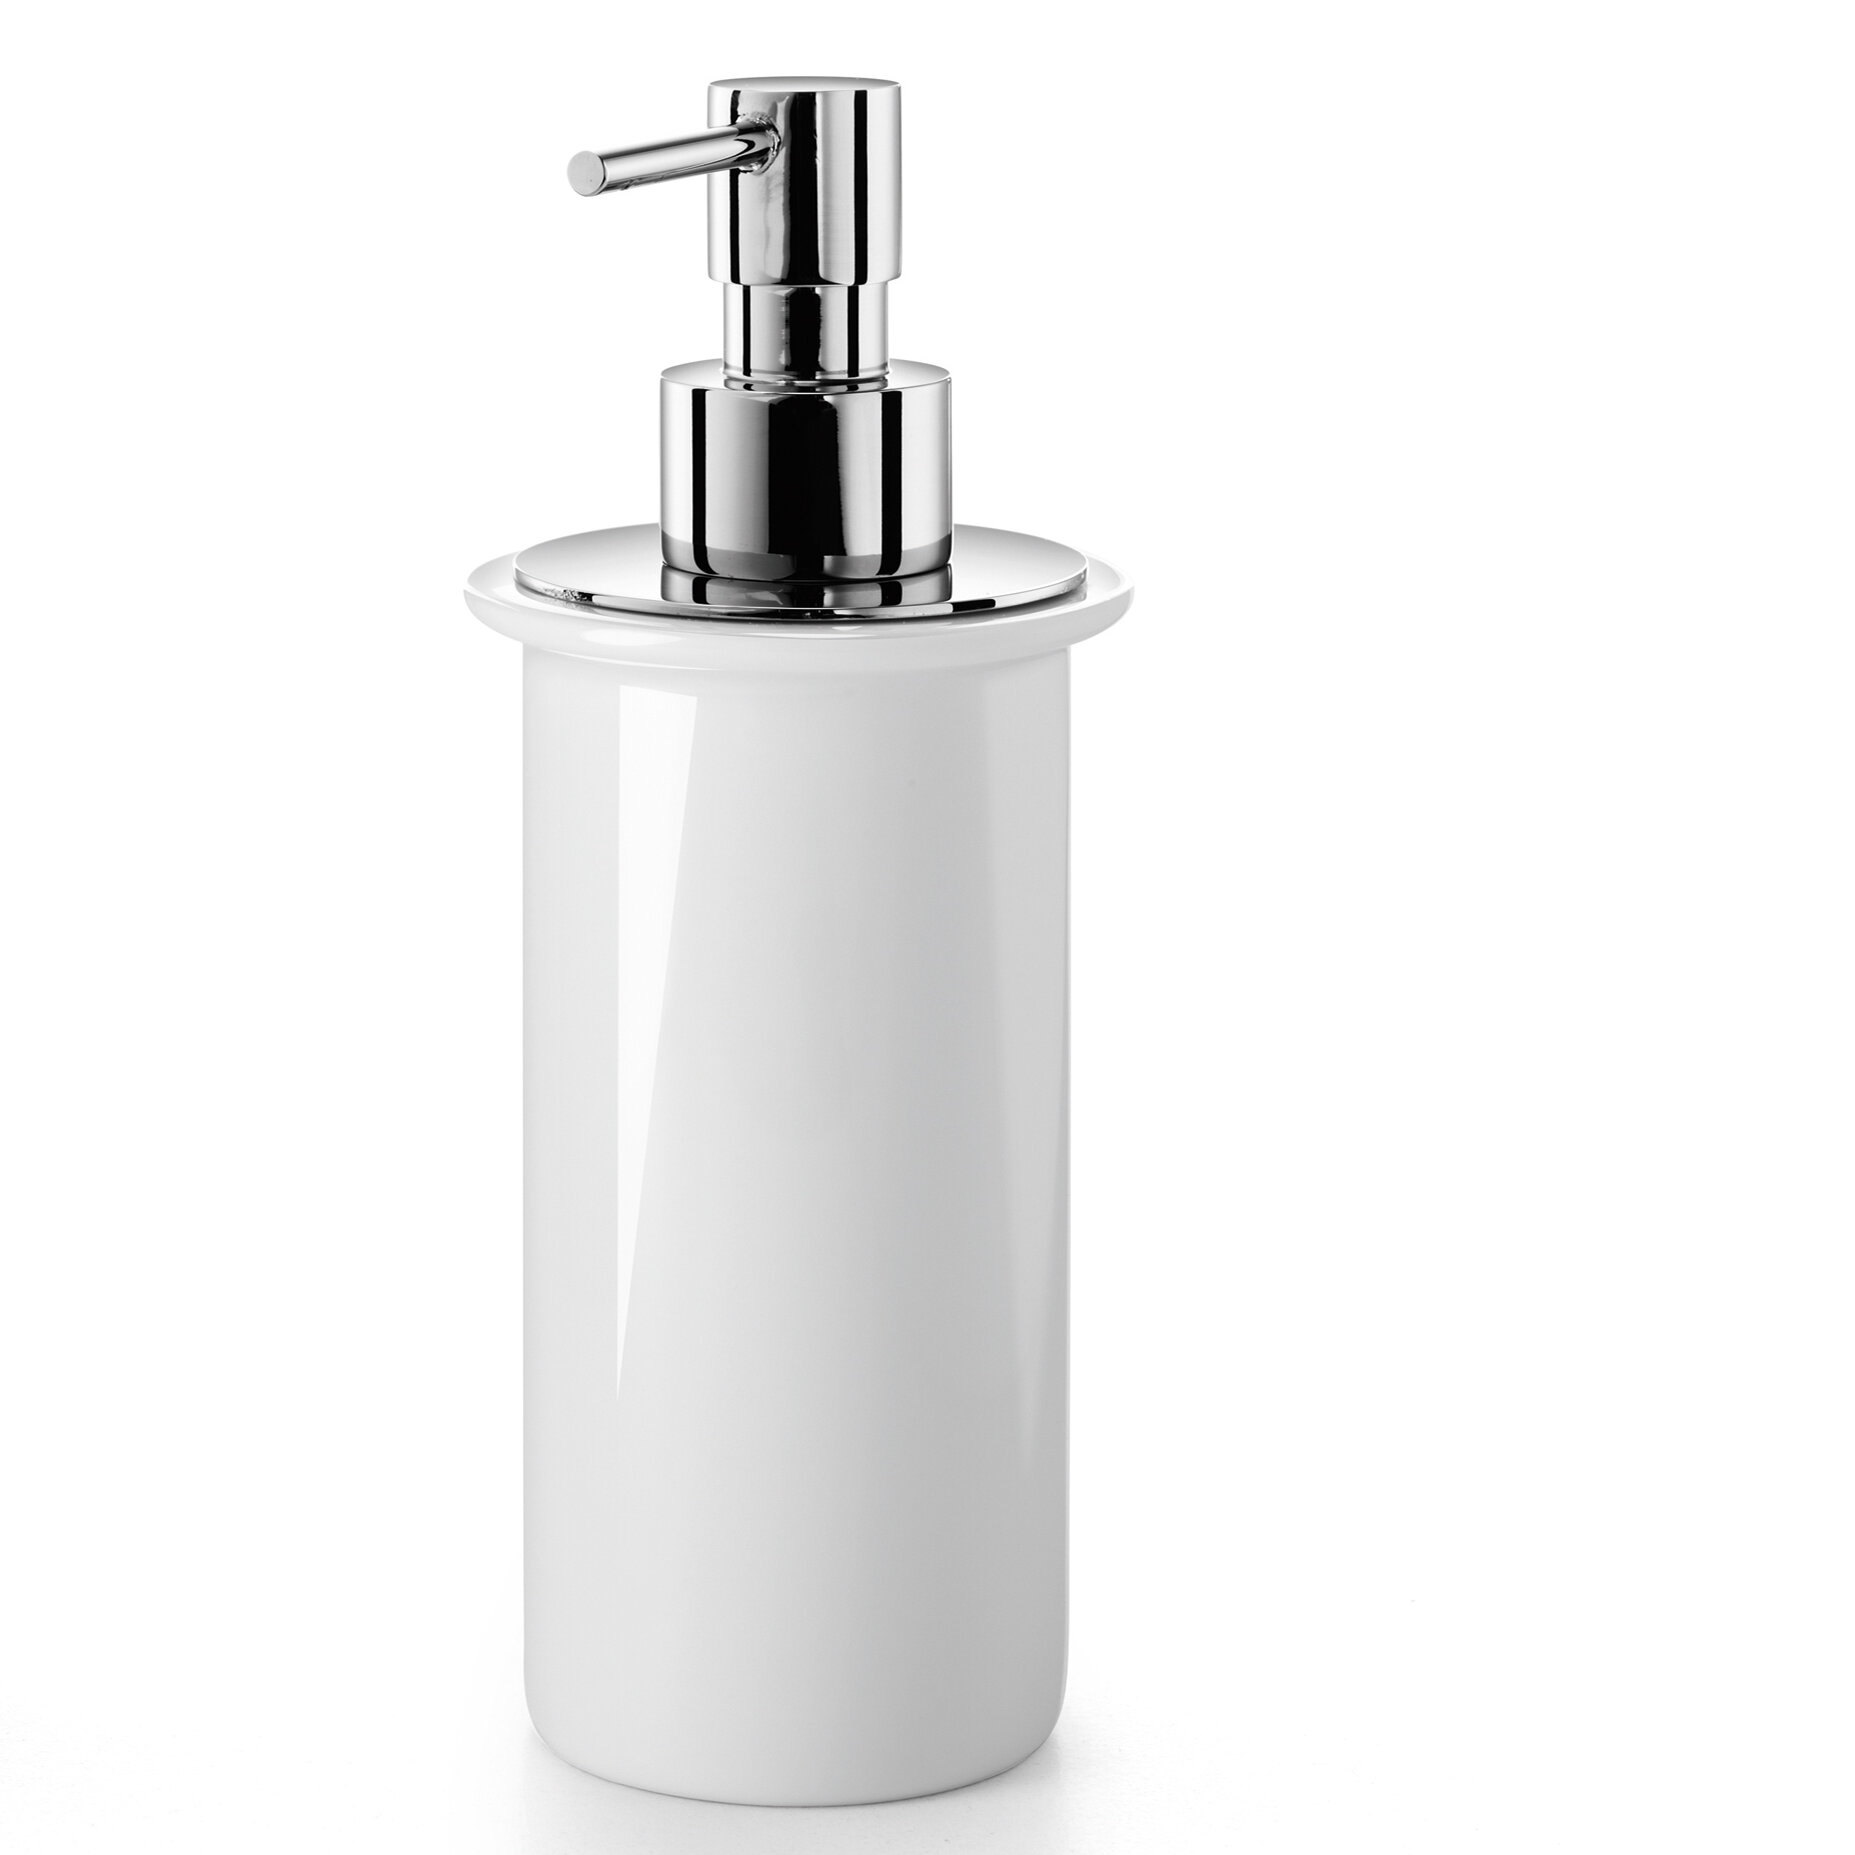 Saon Soap Dispenser